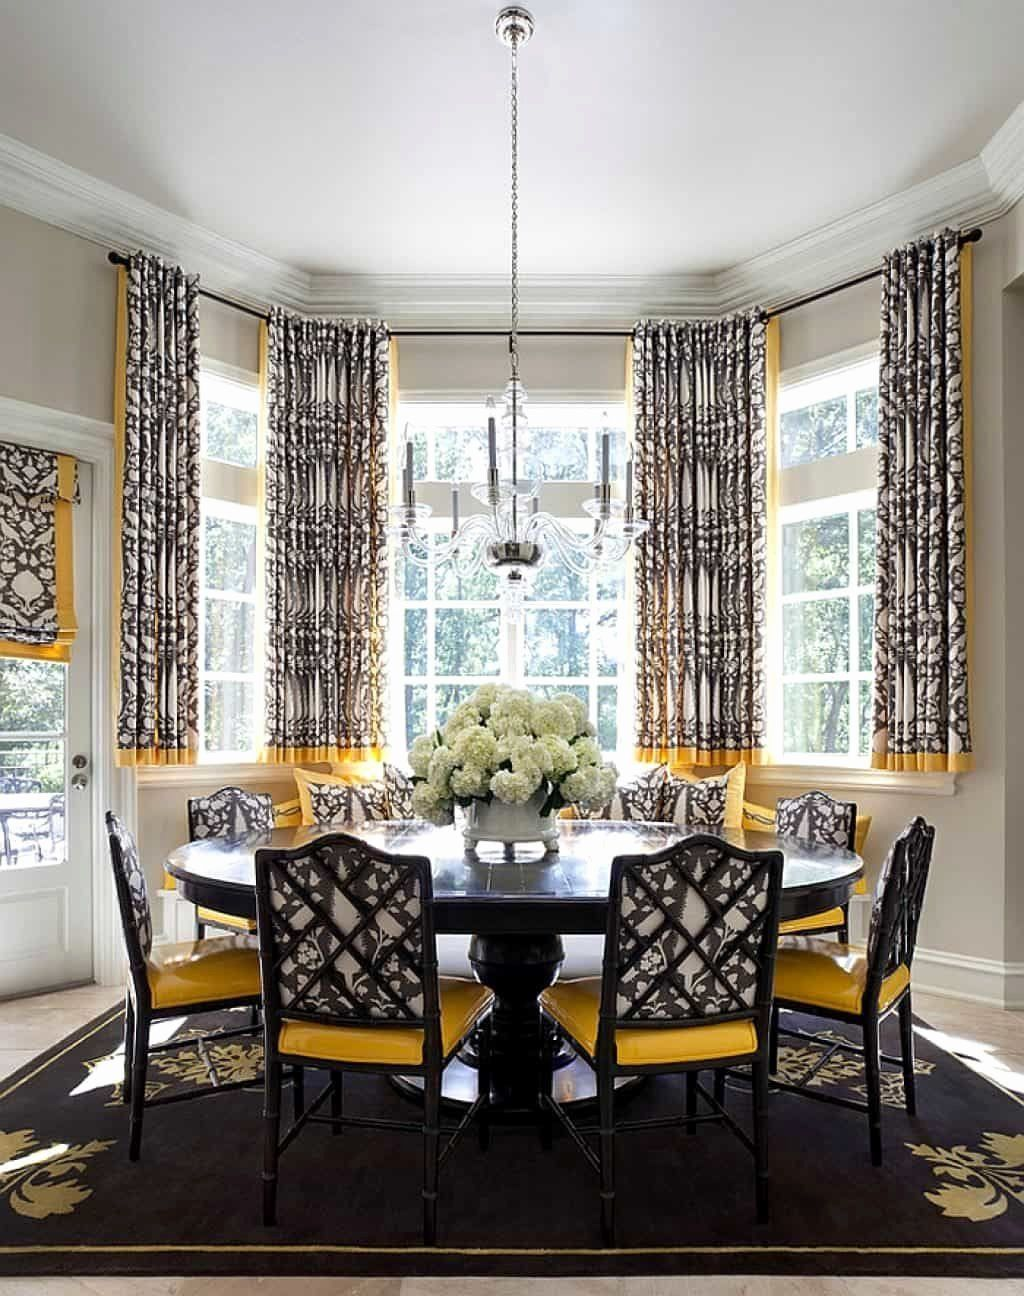 Bay Window Treatments For Dining Room New 12 Formal Dining Room Window Treatments Ideas Din In 2020 Dining Room Window Treatments Dining Room Windows Black Dining Room